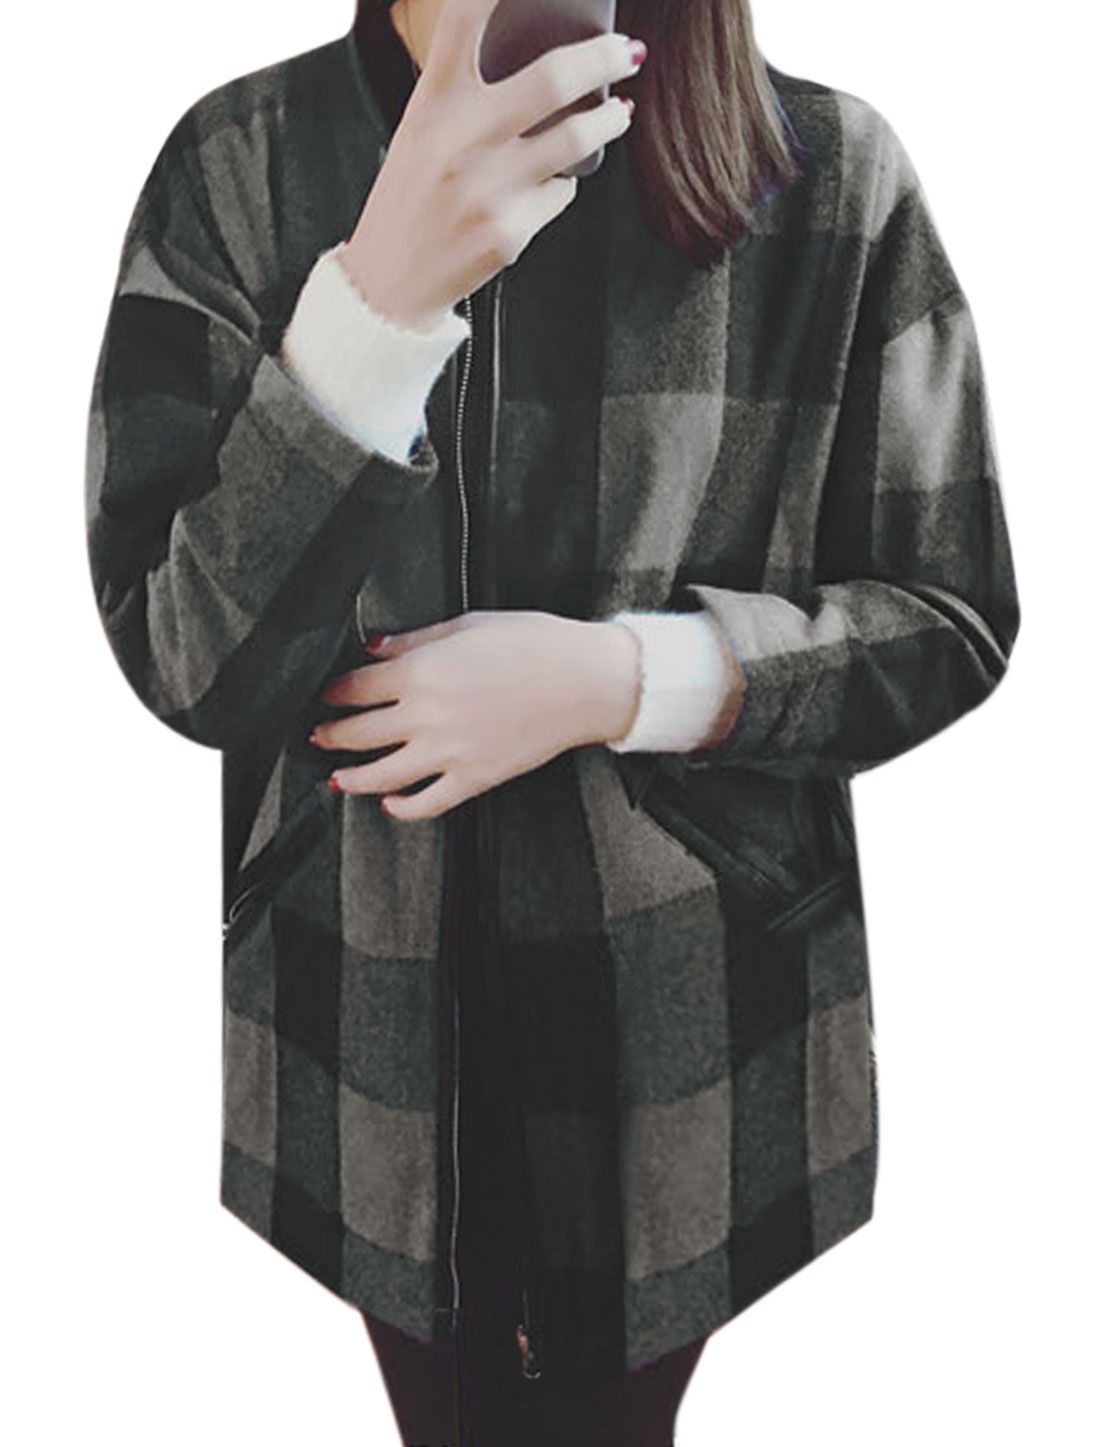 Women Asymmetric Neck Plaids Pattern Zip Up Front Worsted Jacket Gray XS